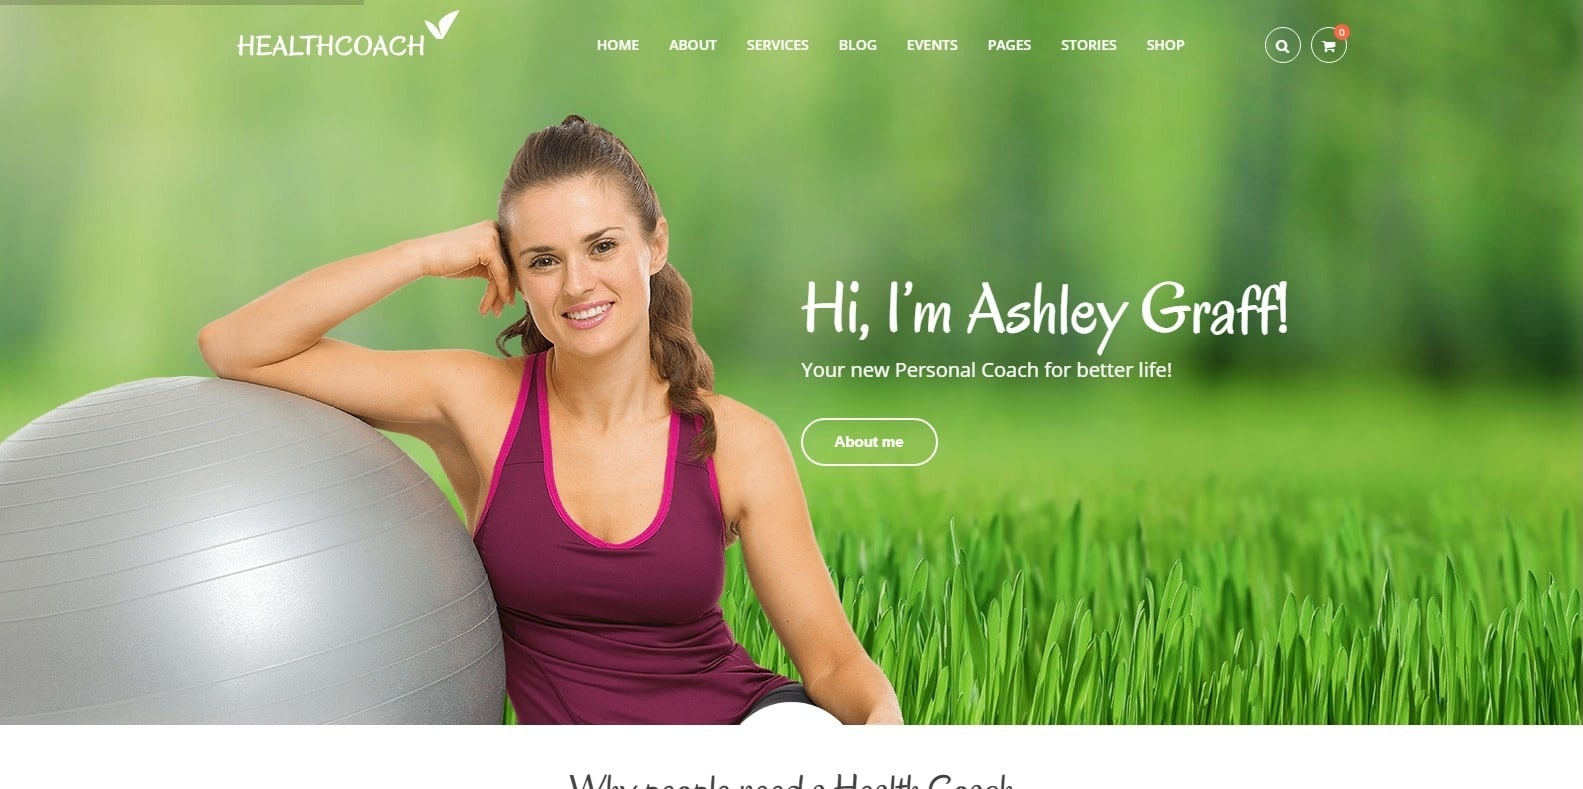 healthcoach-coaching-website template